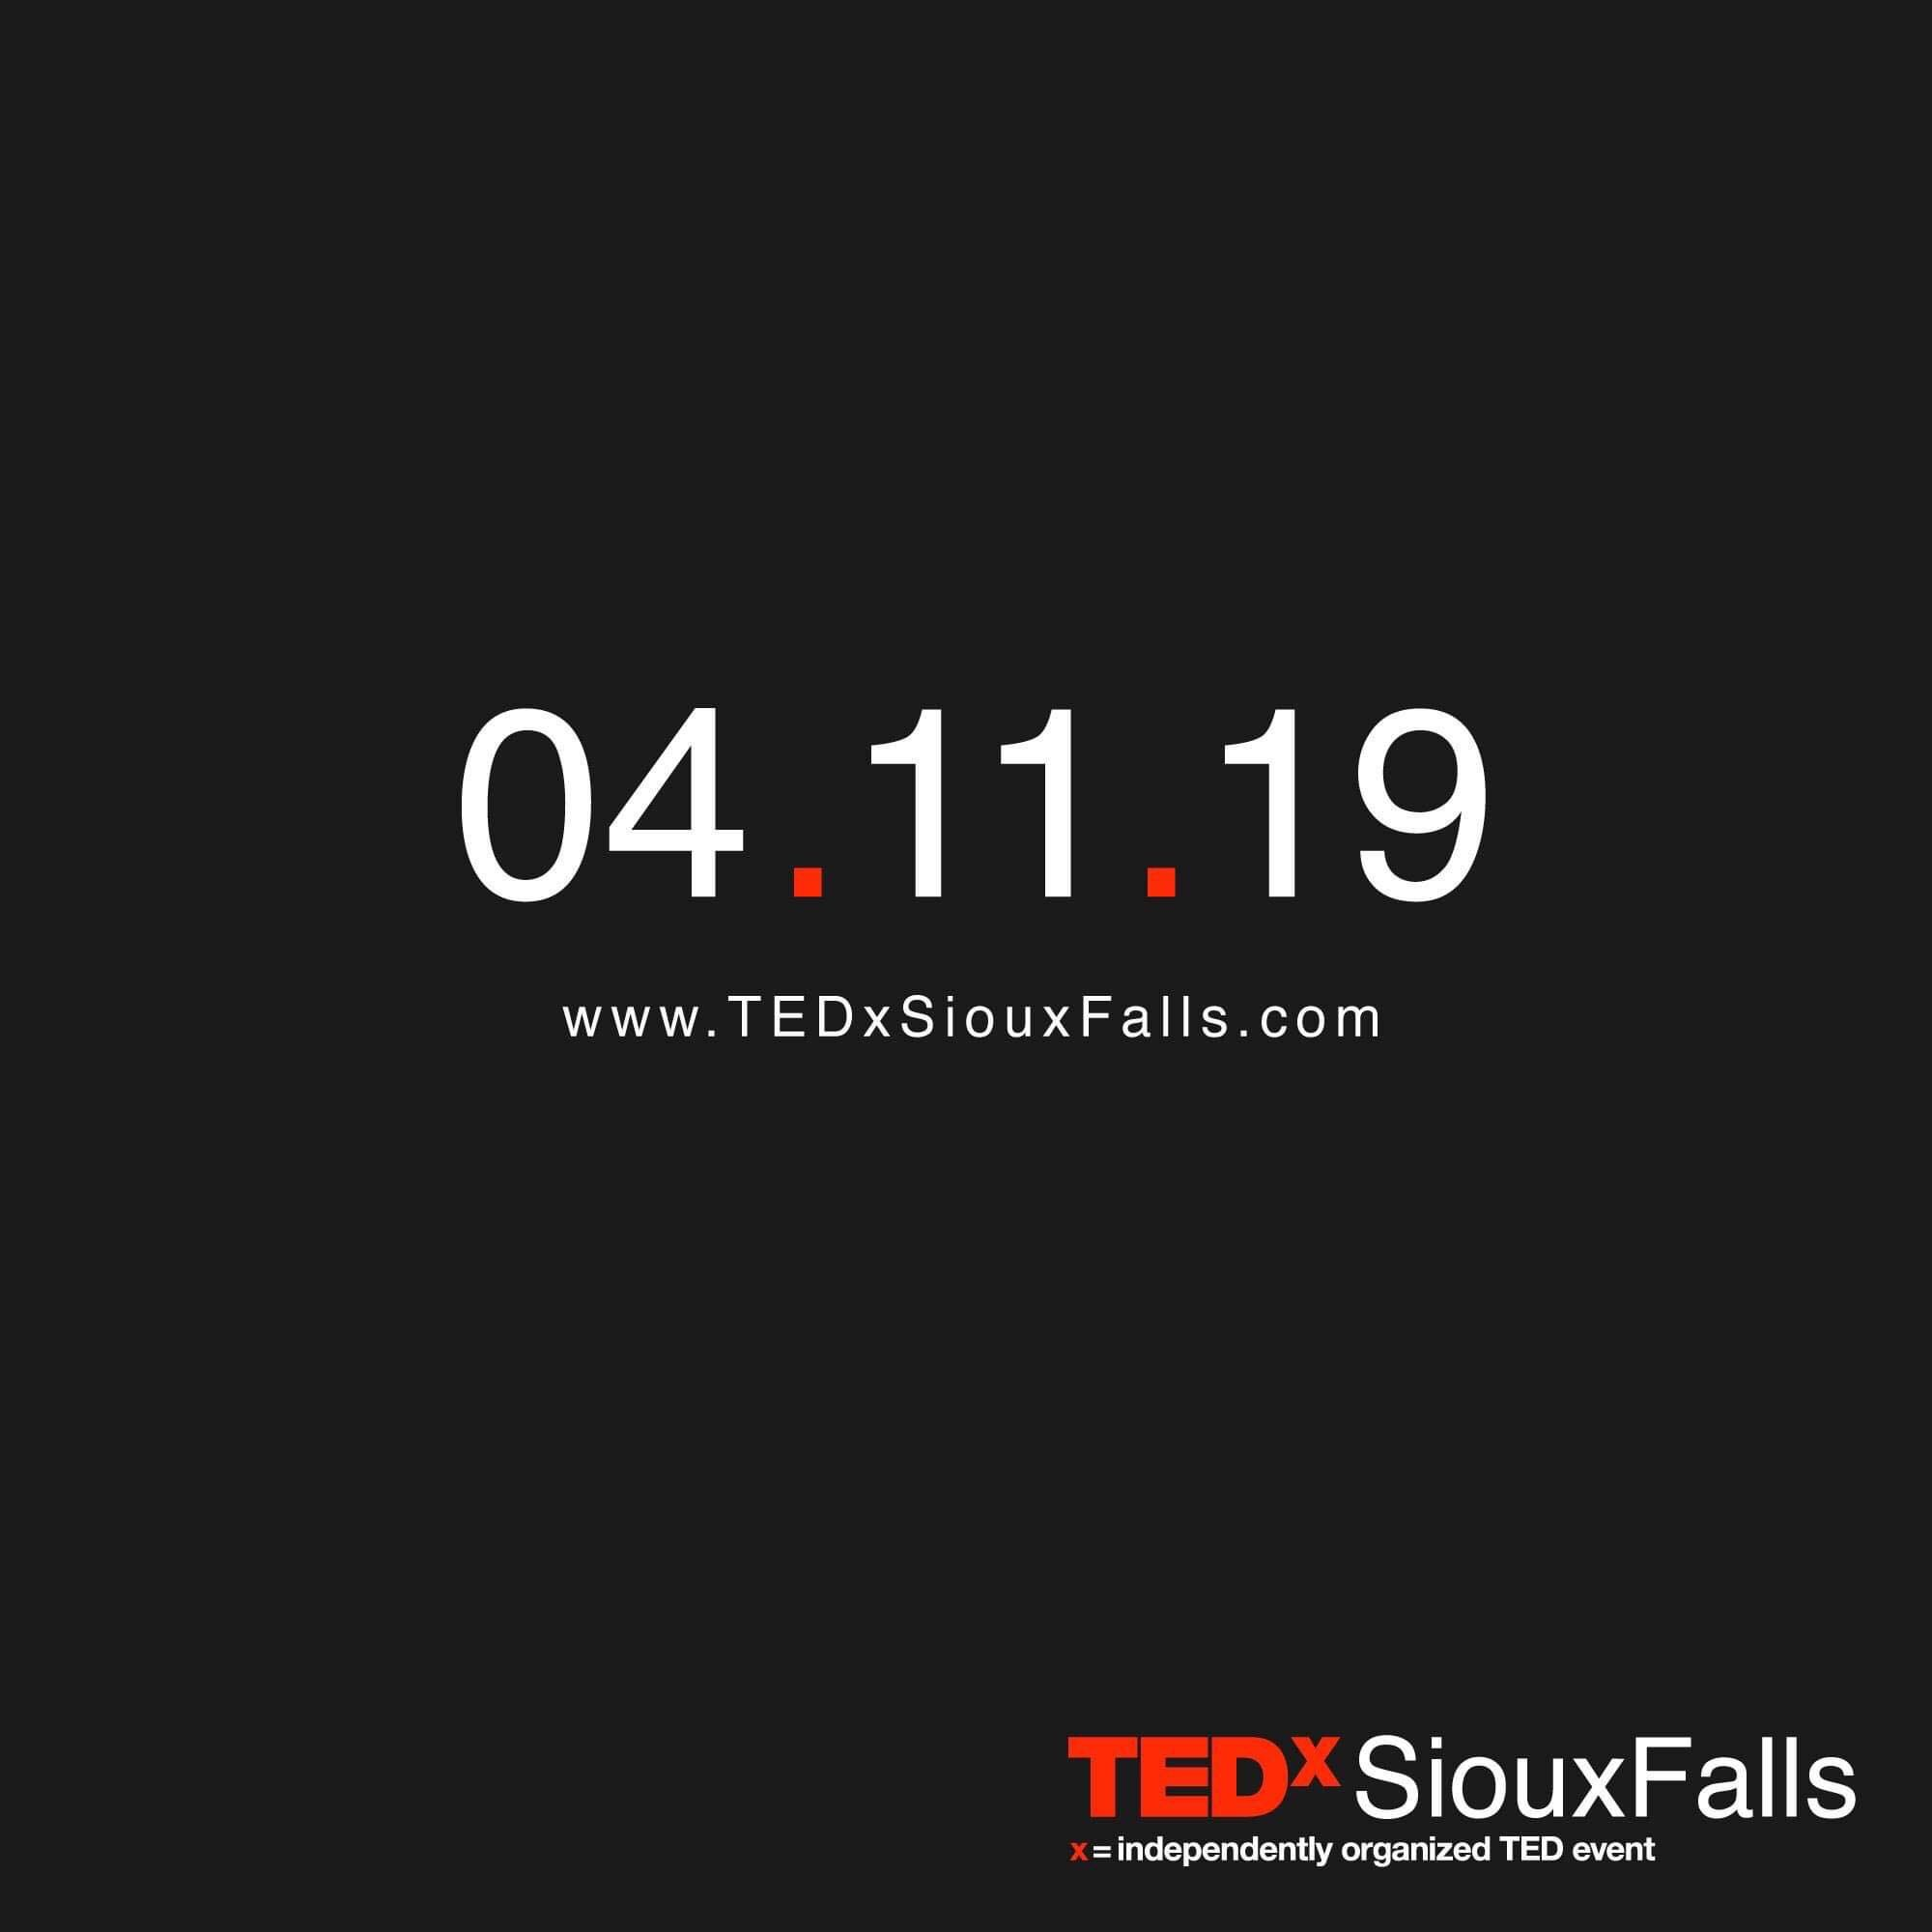 TEDx Sioux Falls is back, for the first time since 2014